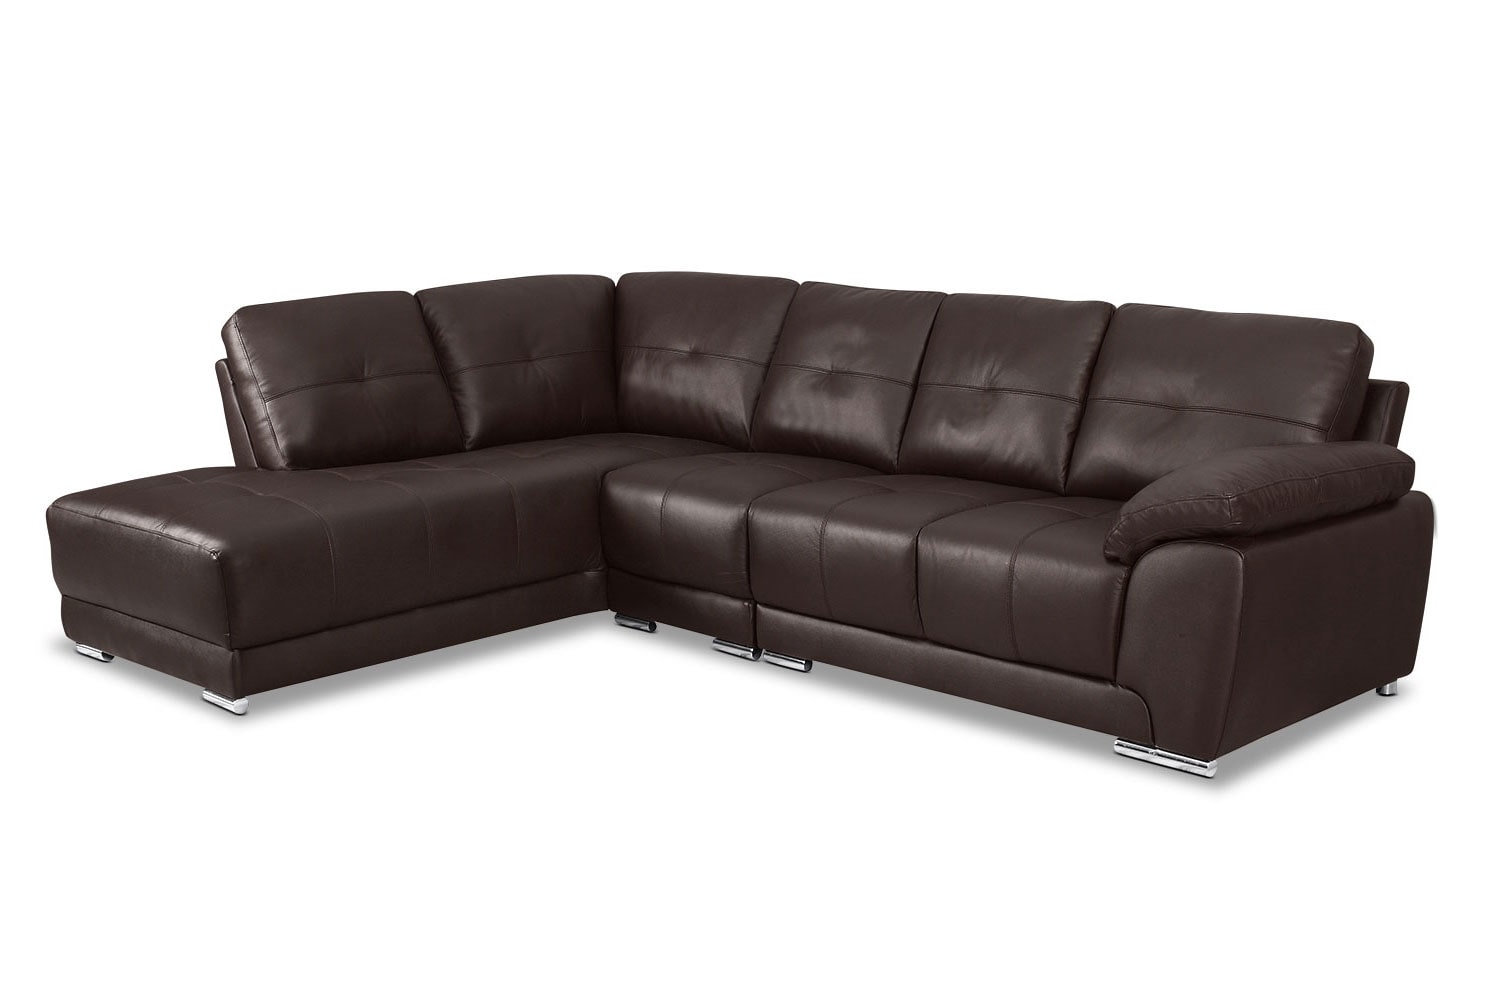 Rothwell 3 piece left facing chaise sectional brown for 3 piece leather sectional sofa with chaise